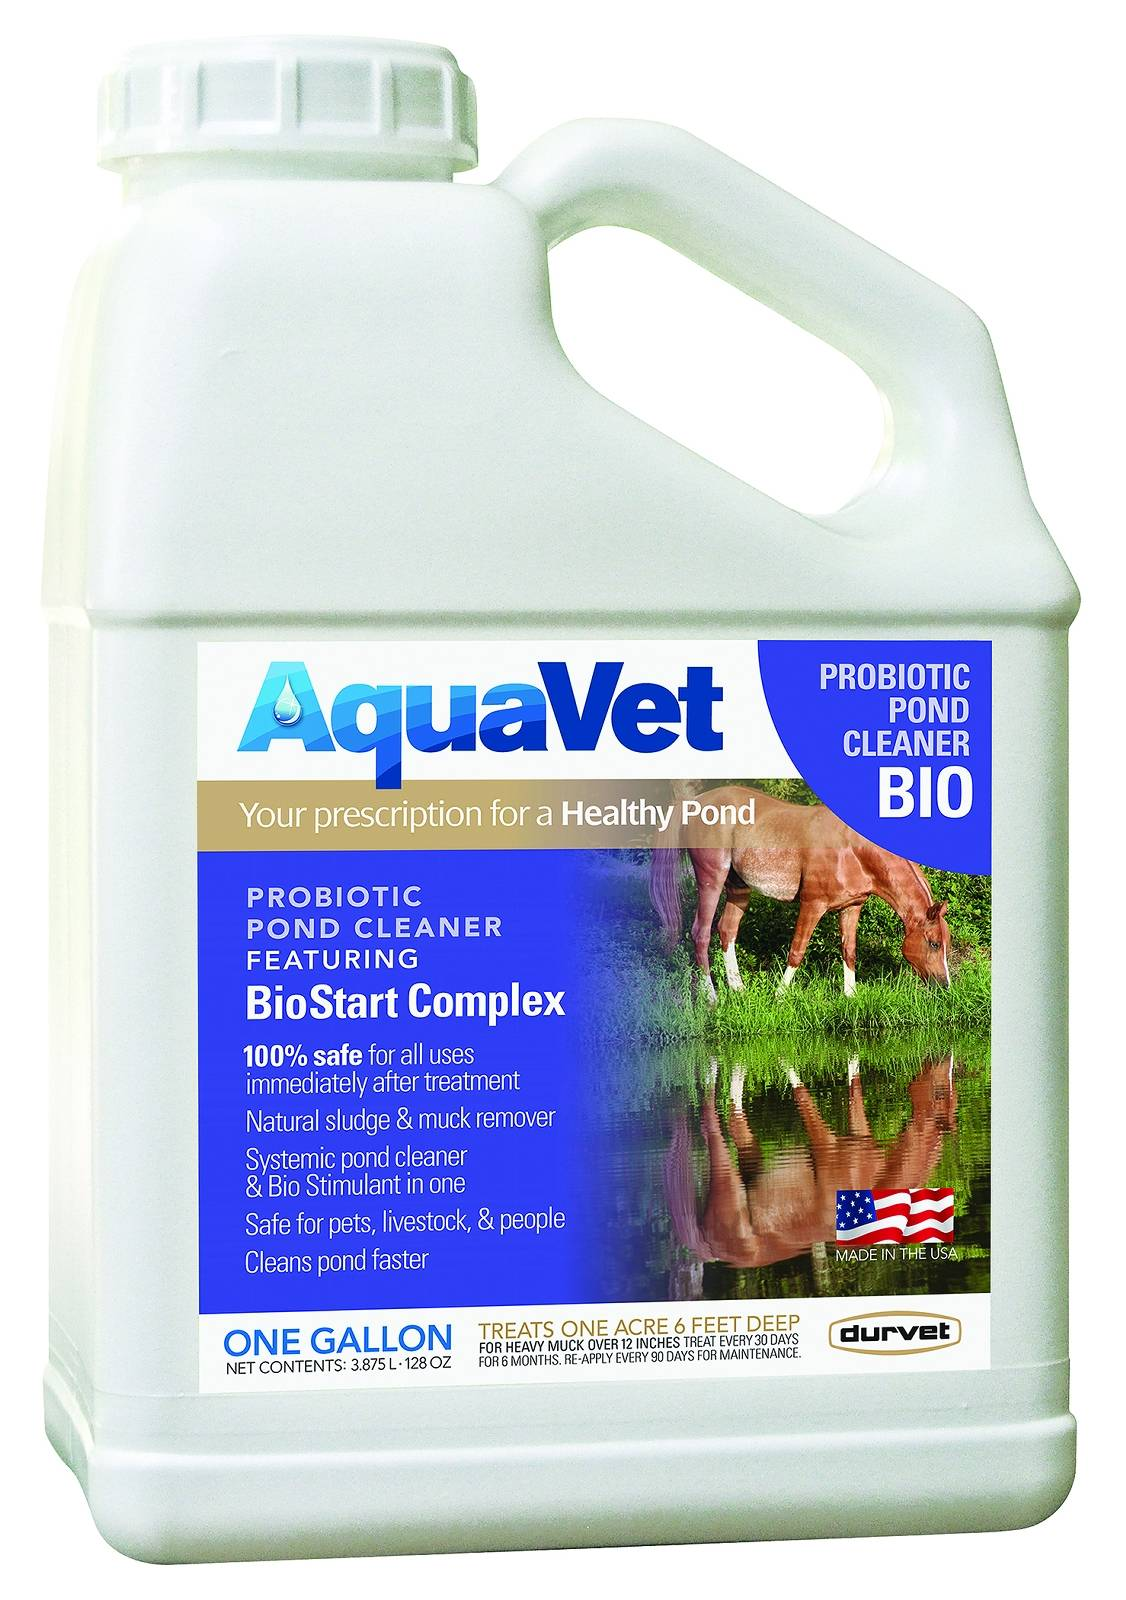 Bio Pond Cleaner